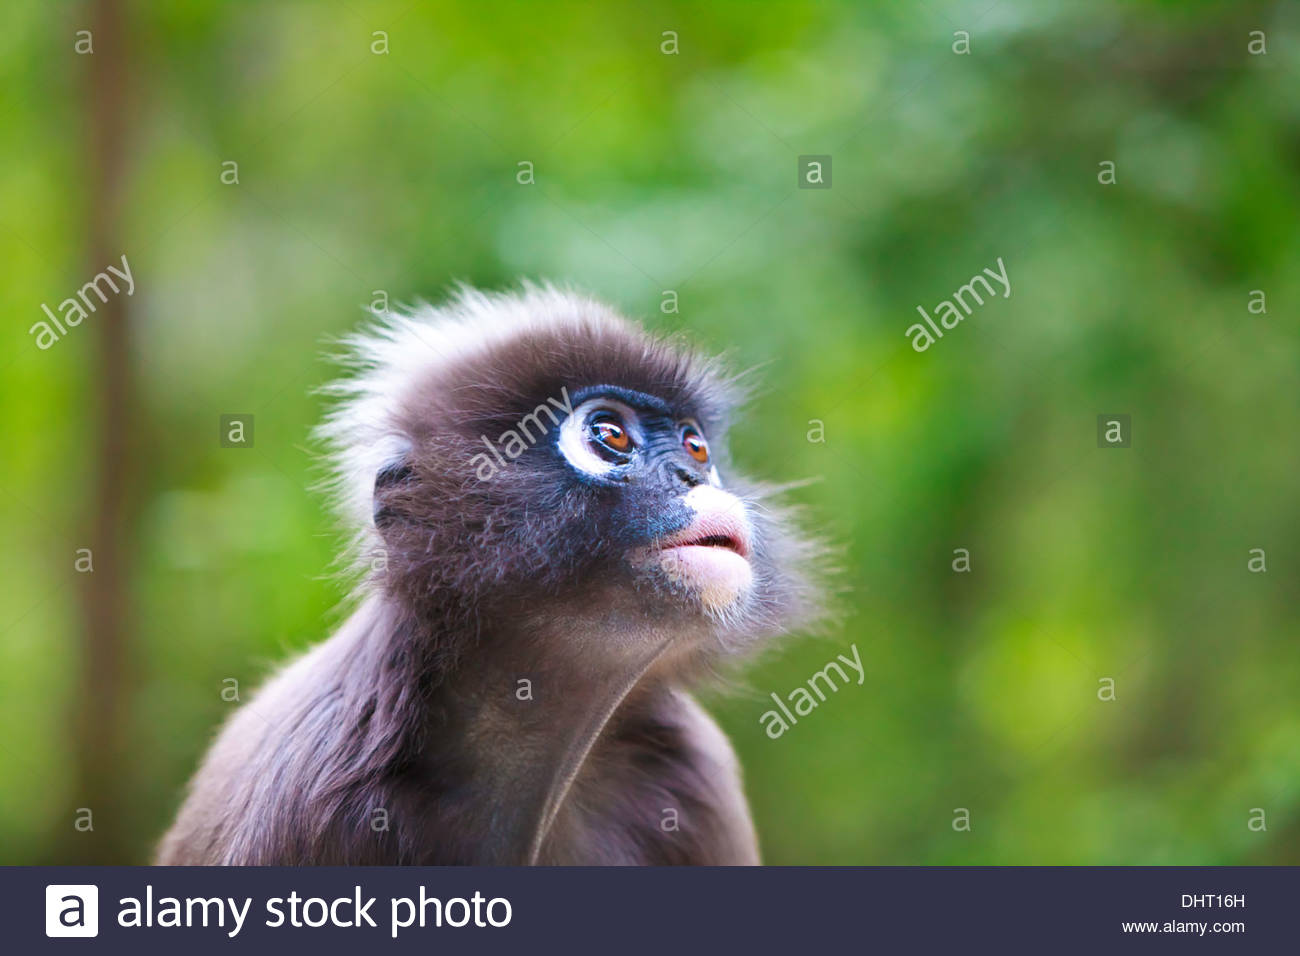 The dusky leaf monkey, spectacled langur, or spectacled leaf monkey (Trachypithecus obscurus) is a species of primate - Stock Image